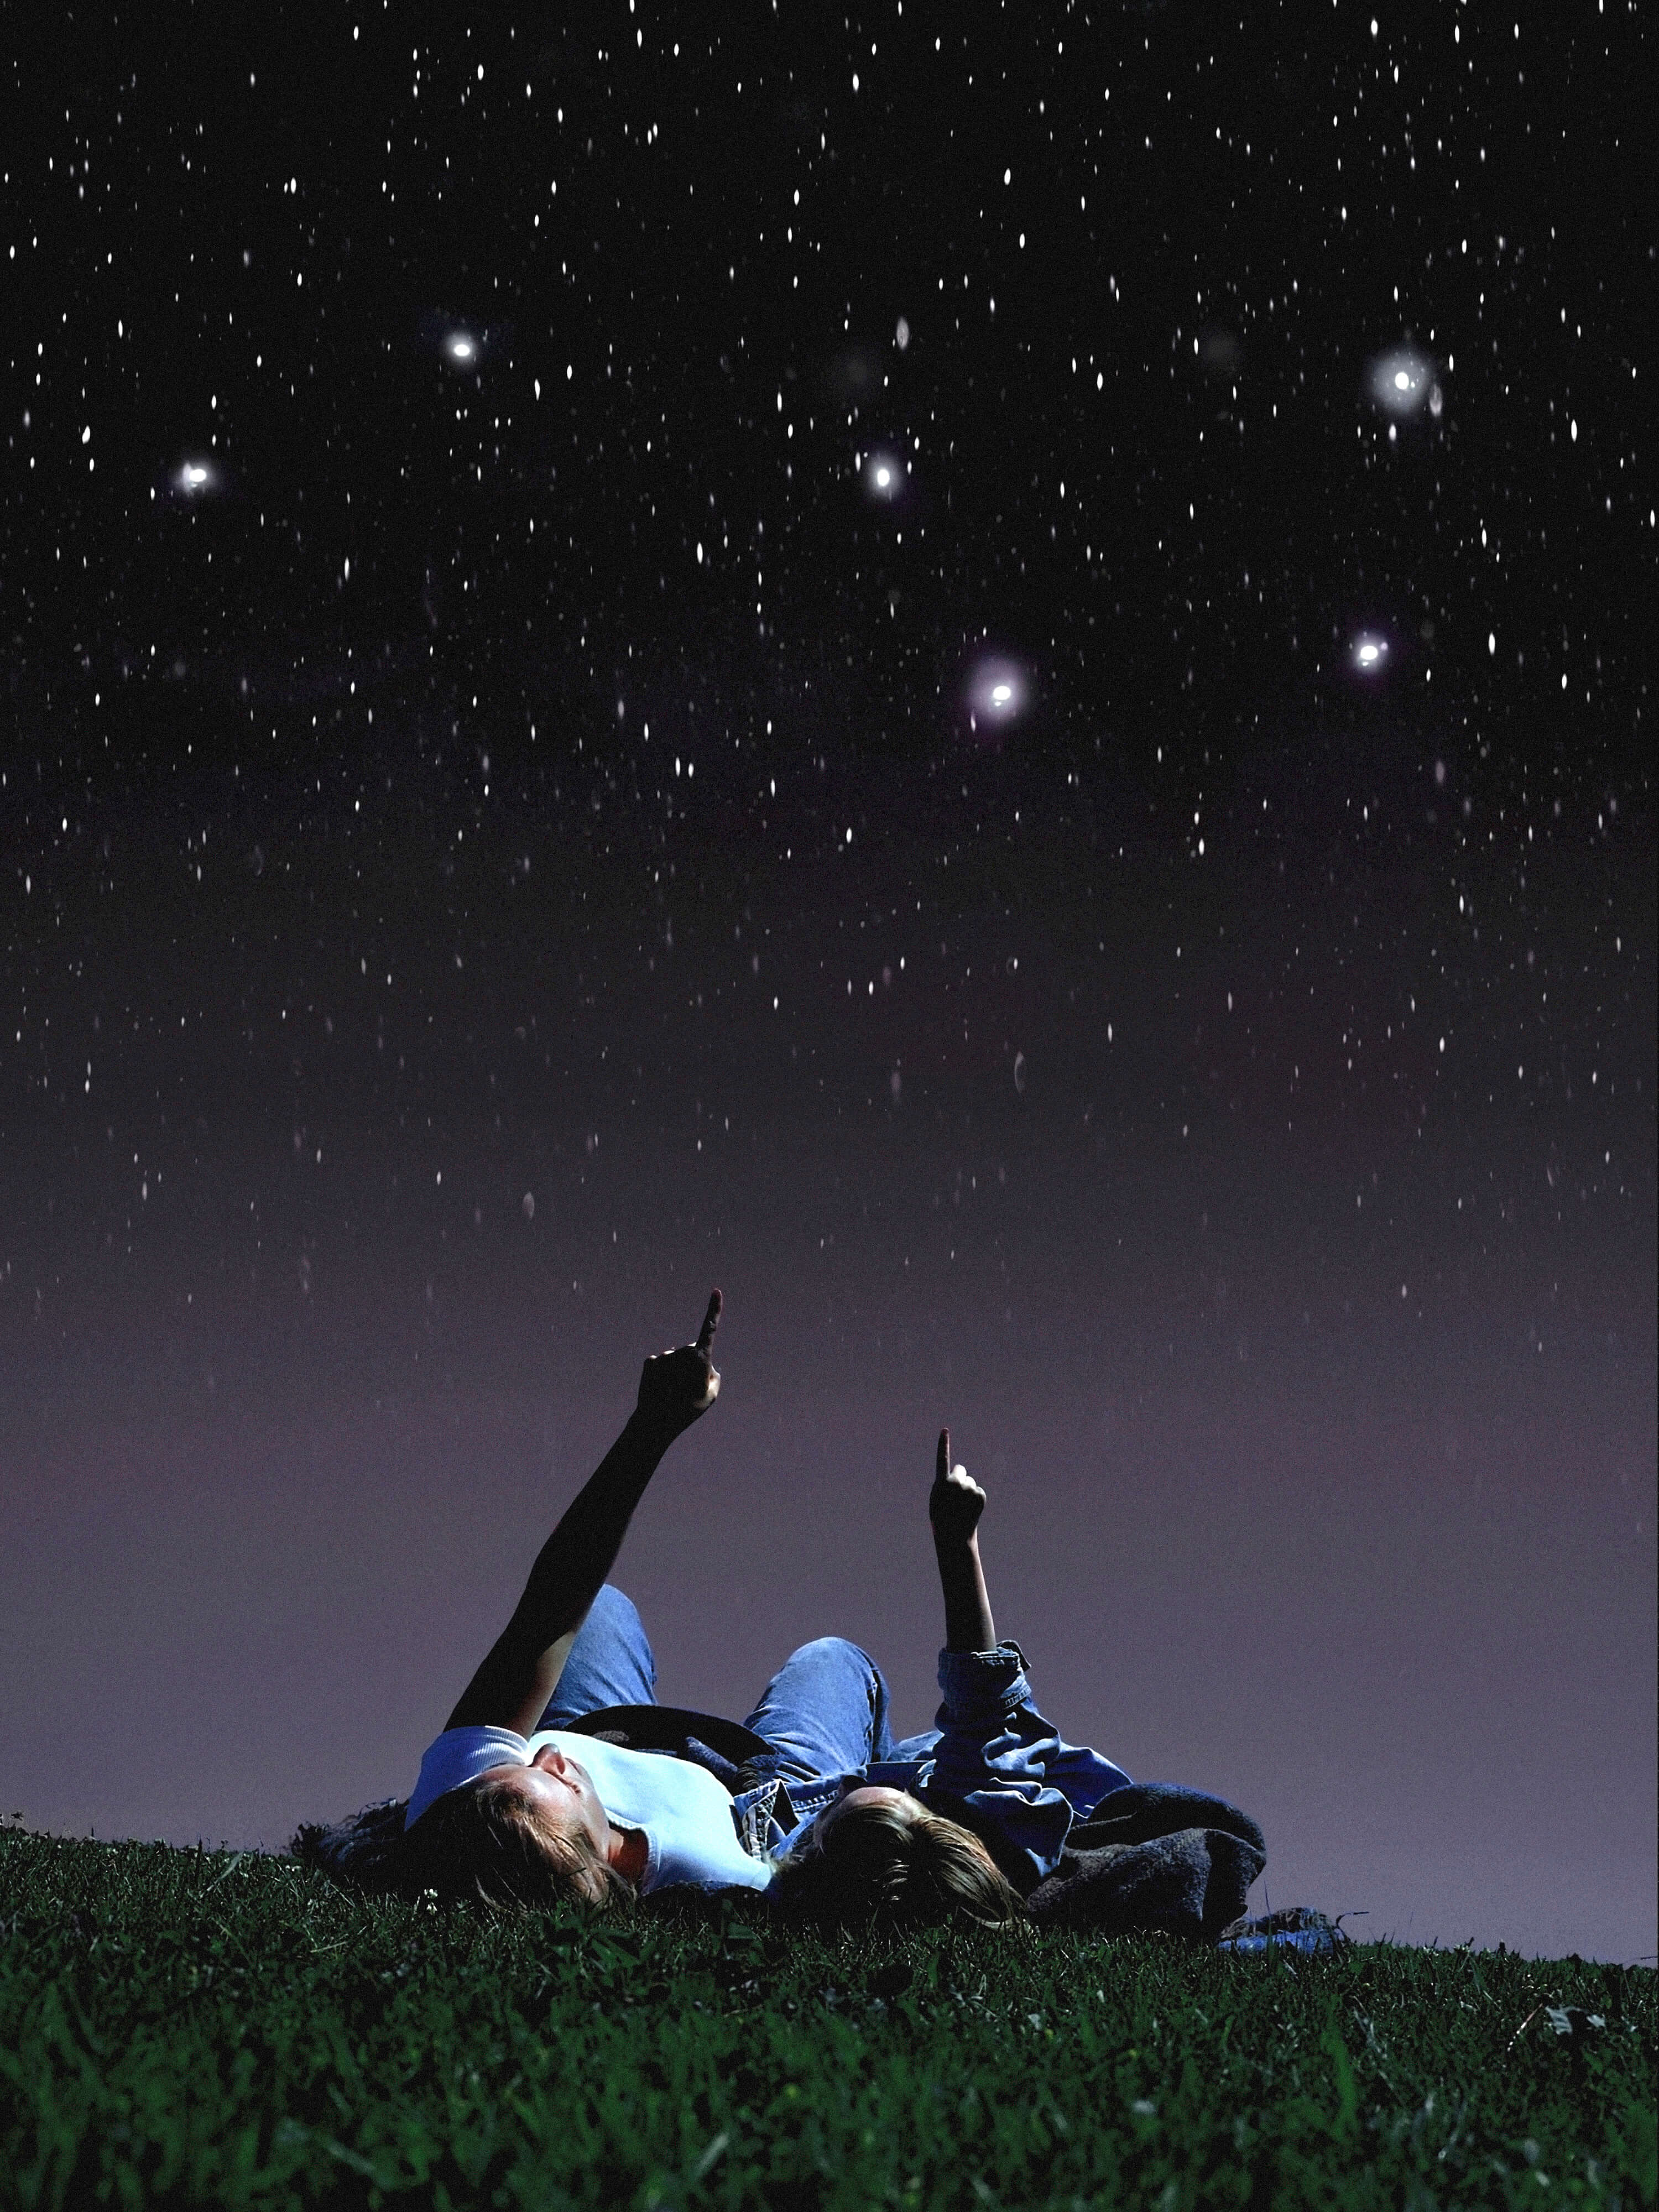 Stargazing is fun and educational for children